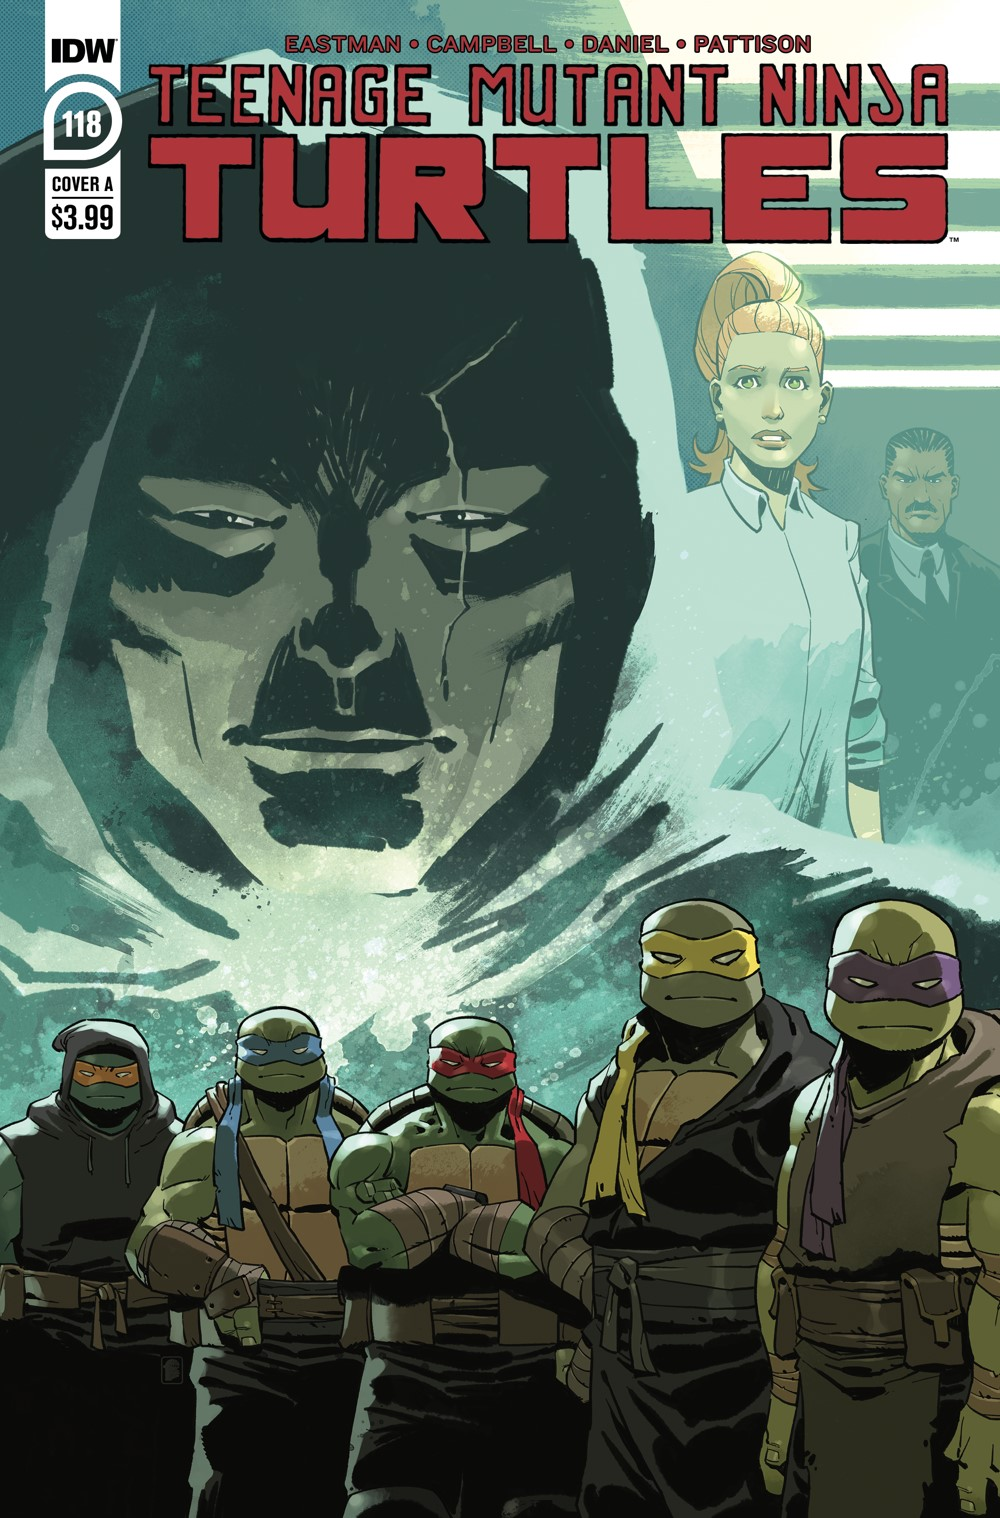 TMNT118_cvrA ComicList: IDW Publishing New Releases for 06/23/2021